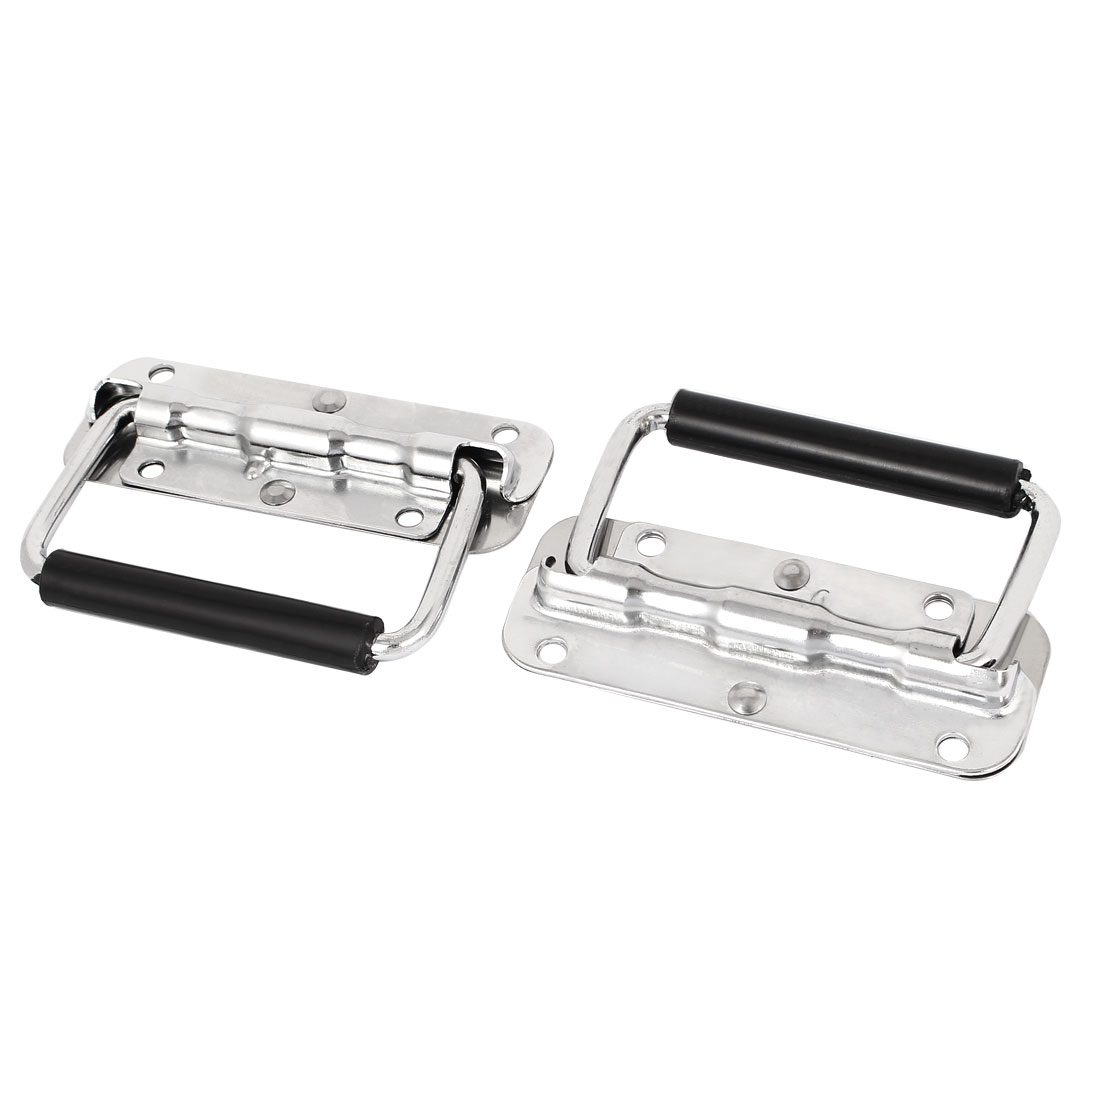 Toolbox Door Cabinet Box Spring Loaded Stainless Steel Puller Chest Handle 2 Pcs